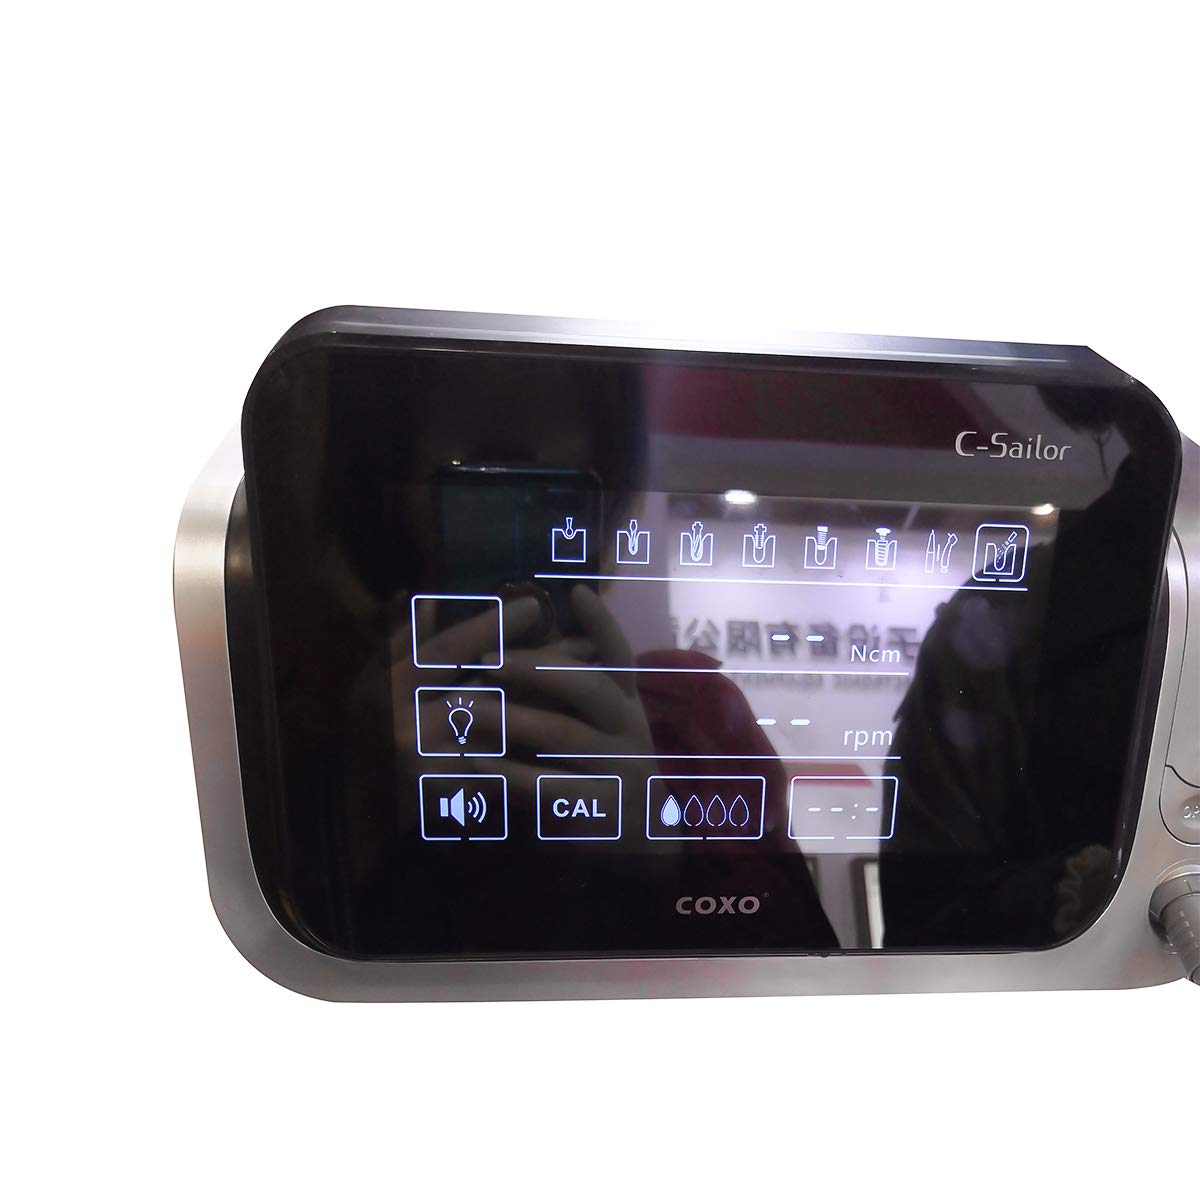 OUBO BRAND Coxo C-Sailor Surgical Brushless Touch Screen Style Pro Implant System